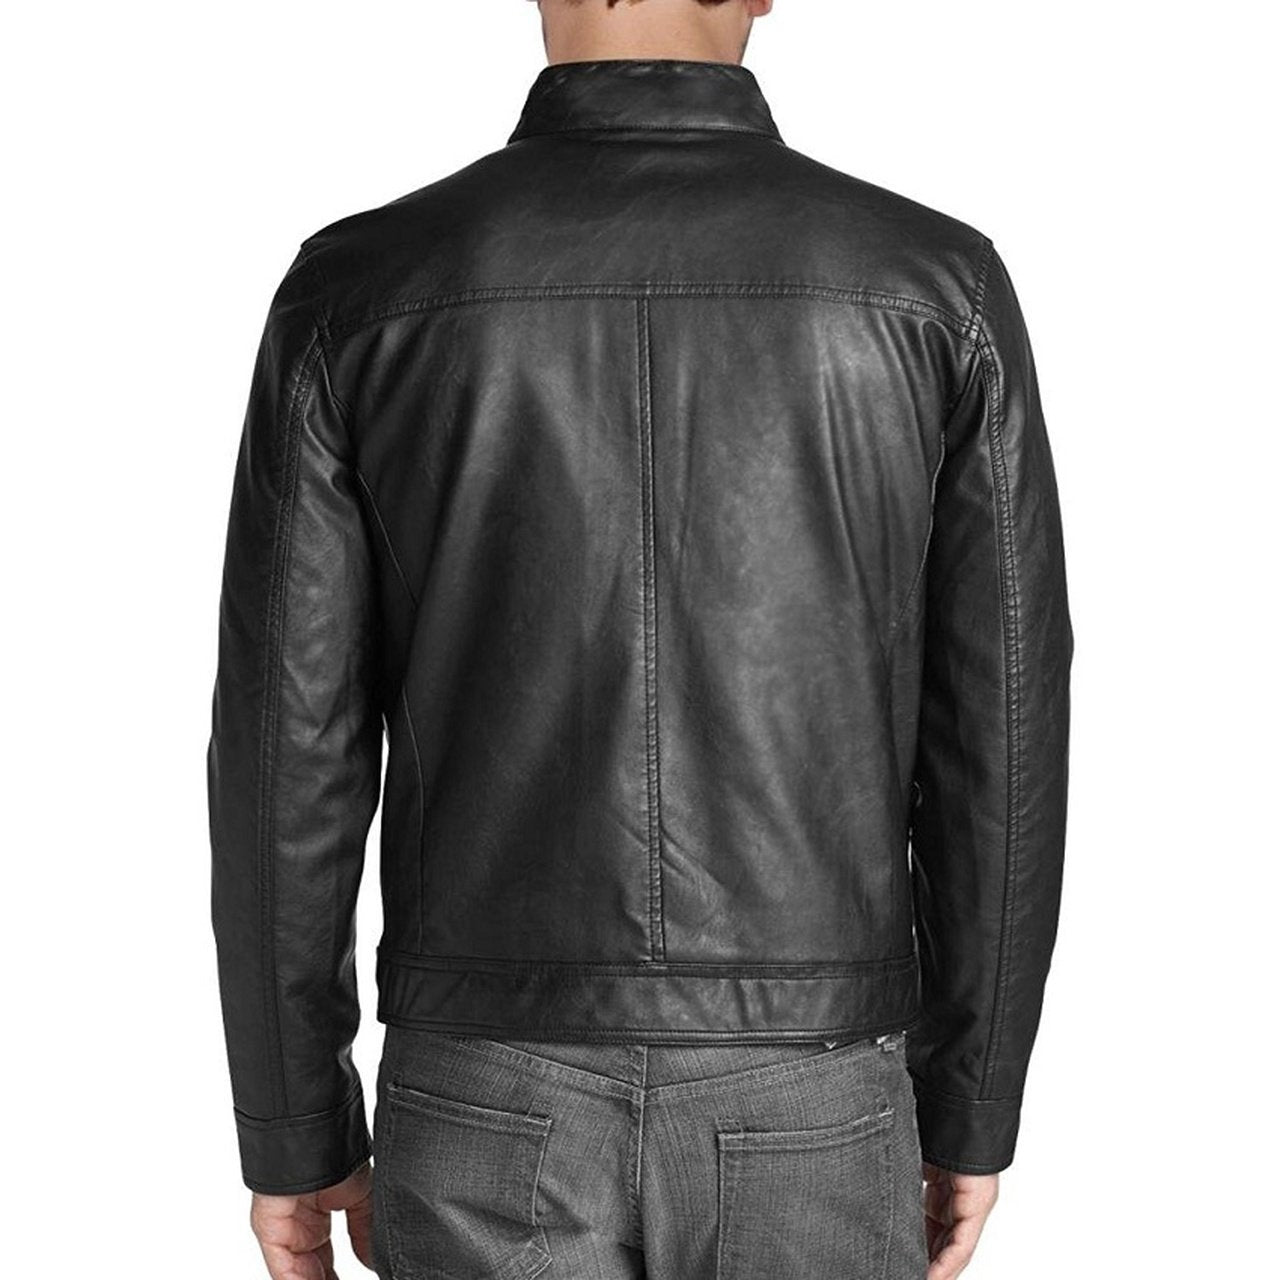 Retro Style Real Leather Jacket With Quilted Shoulders - Men jackets - Leather Jacket